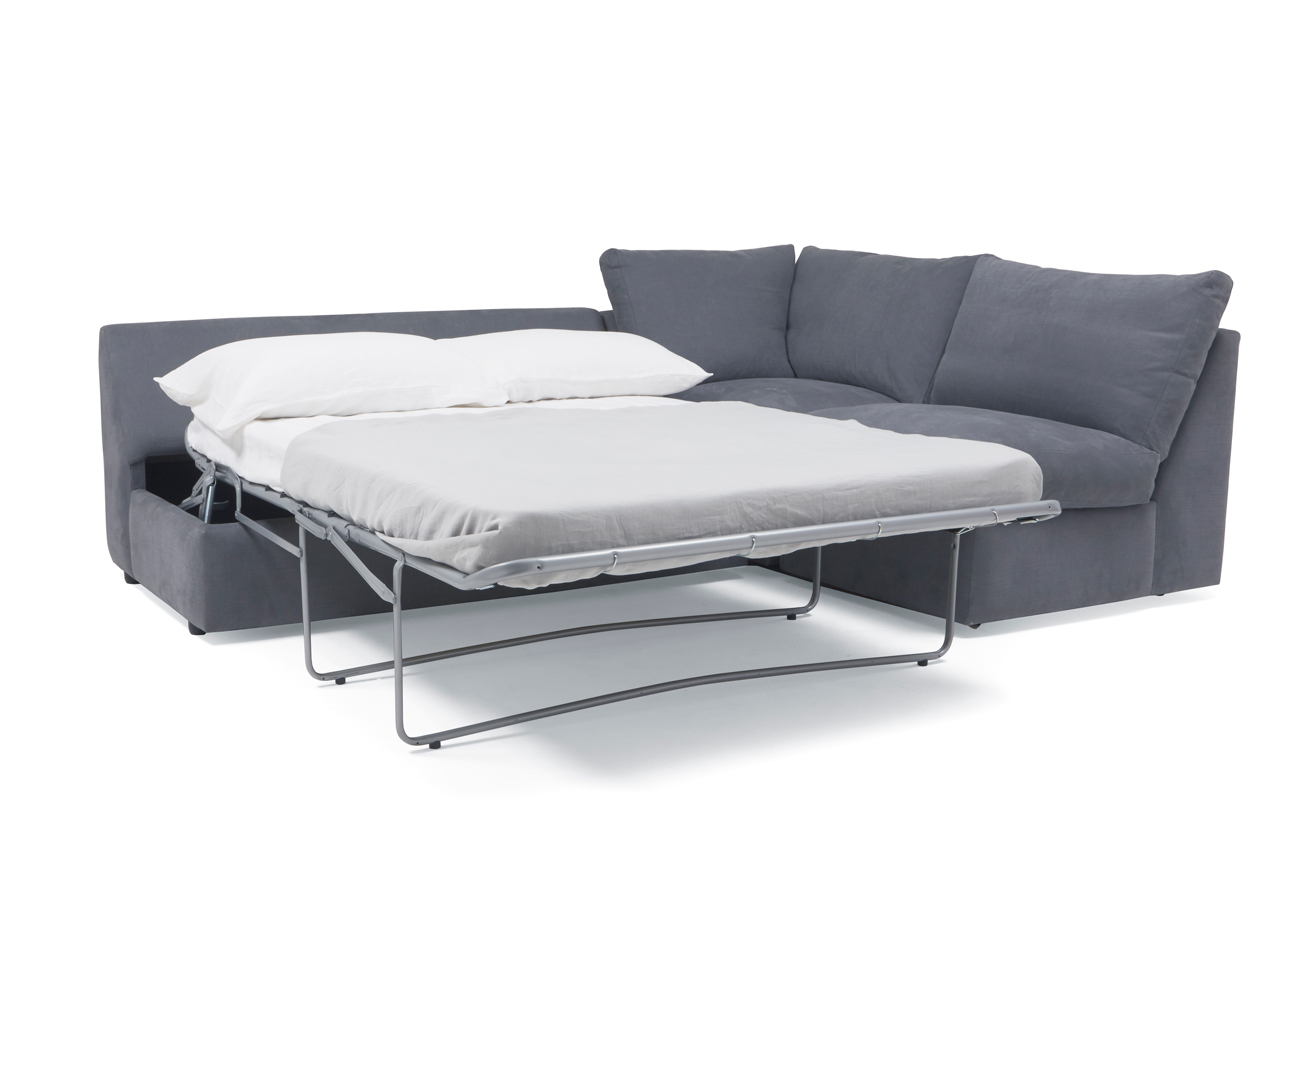 Chatnap Modular Corner Sofa Bed